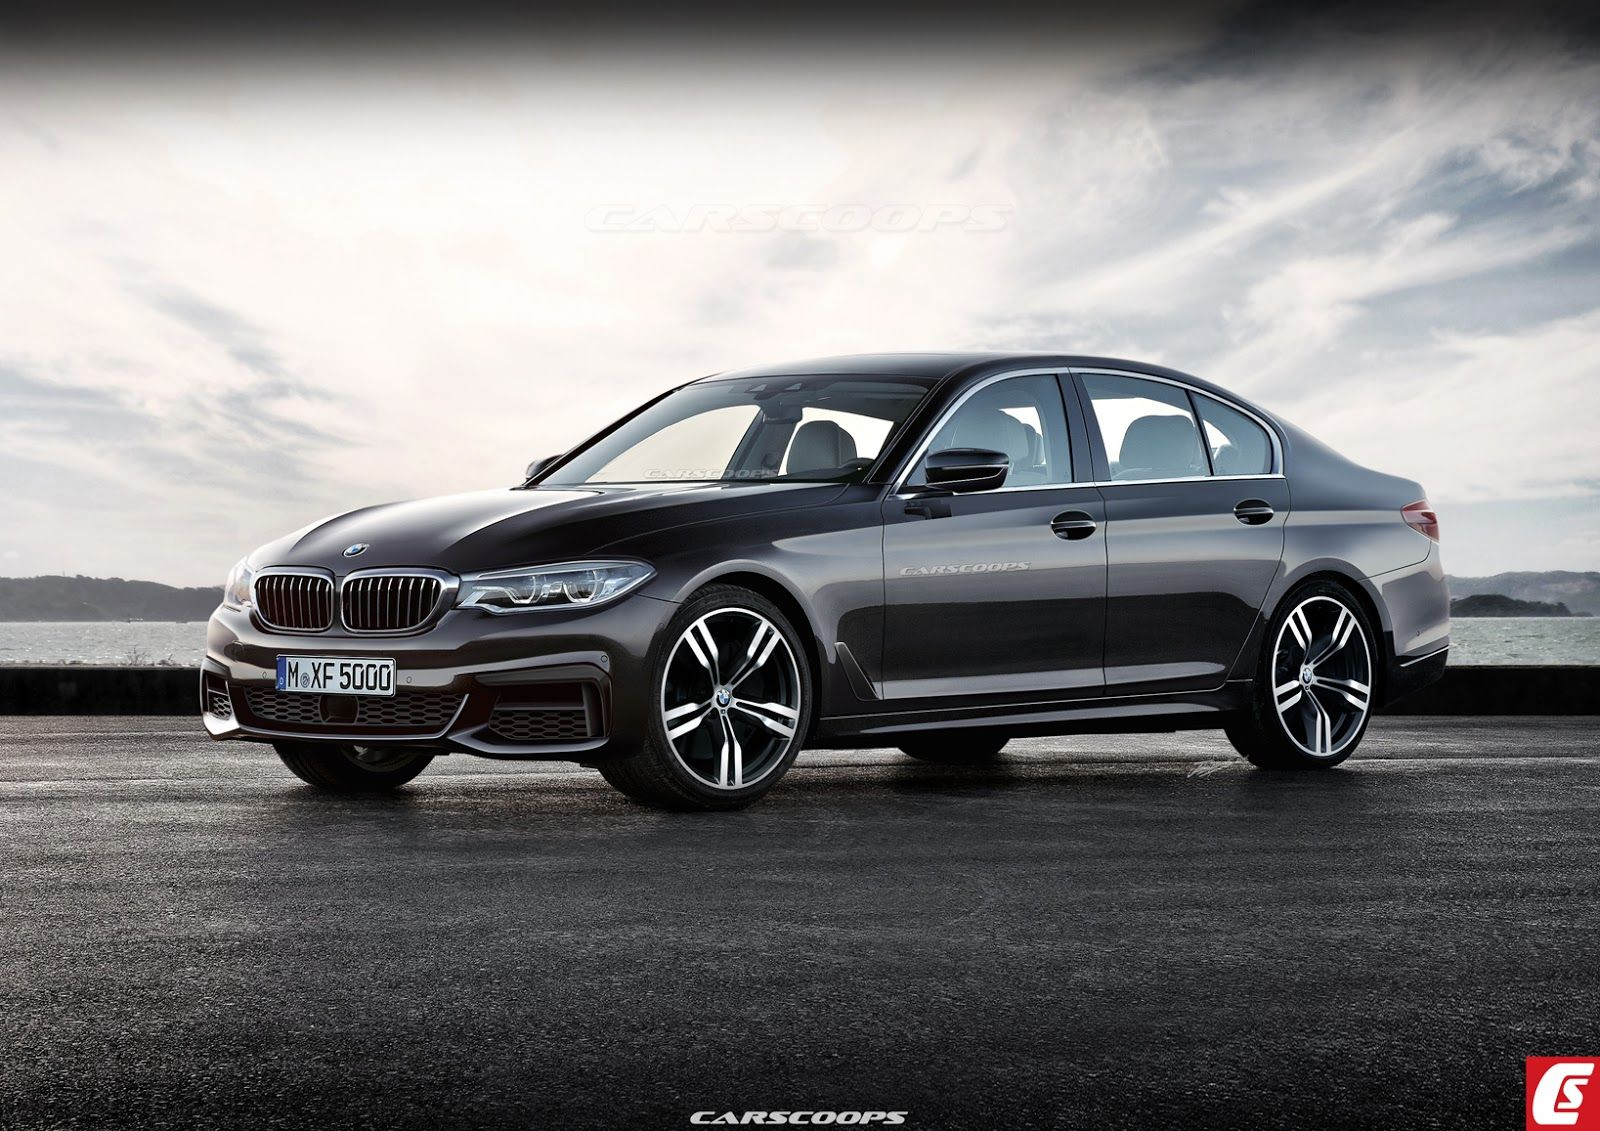 Rendering Shows A Realistic View Of The New 2017 Bmw 5 Series Http